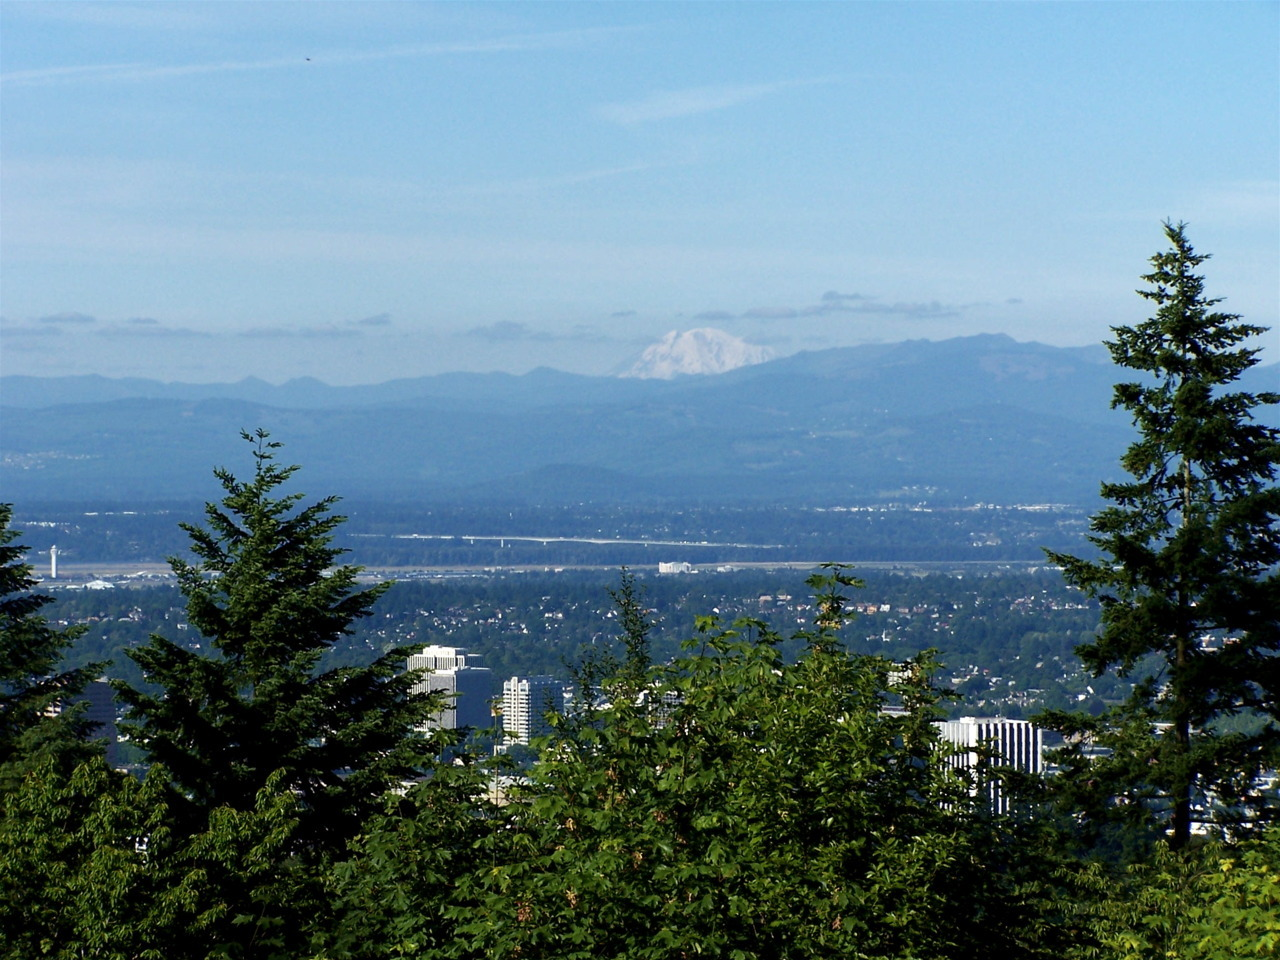 Mt. Adams from Council Crest, with Portland International Airport and the Glenn Jackson Bridge in the foreground.